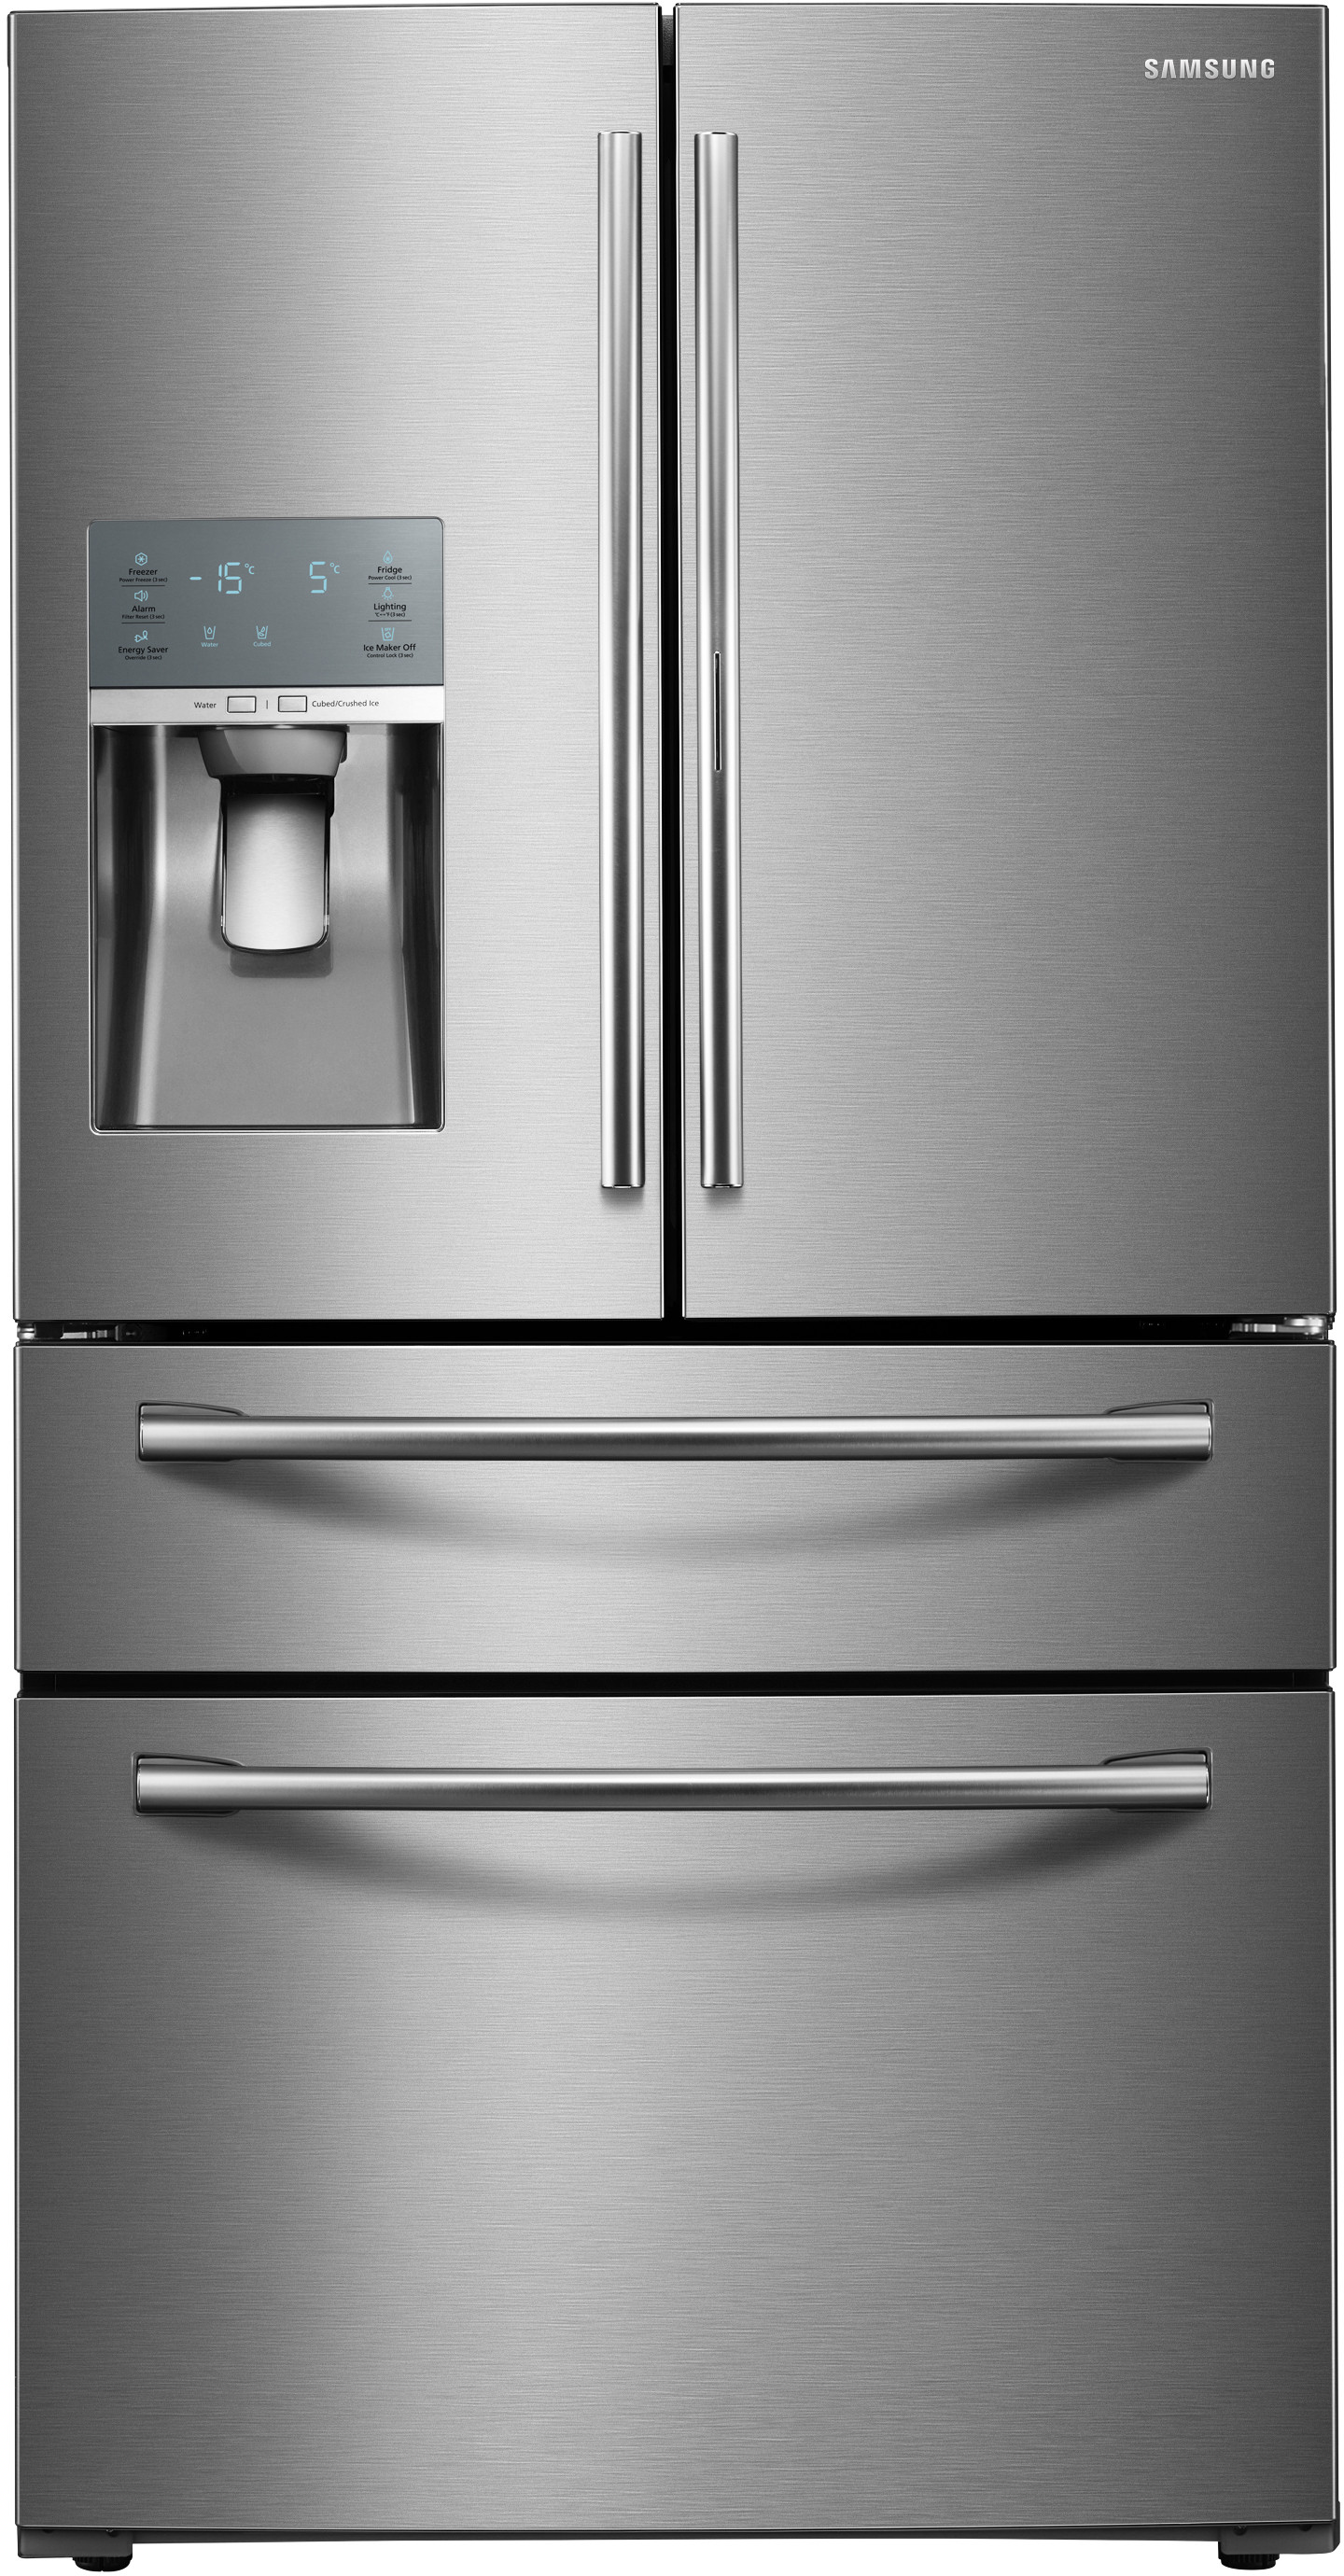 Rf28jbedbsr Samsung Stainless Steel Refrigerator 36 French Door